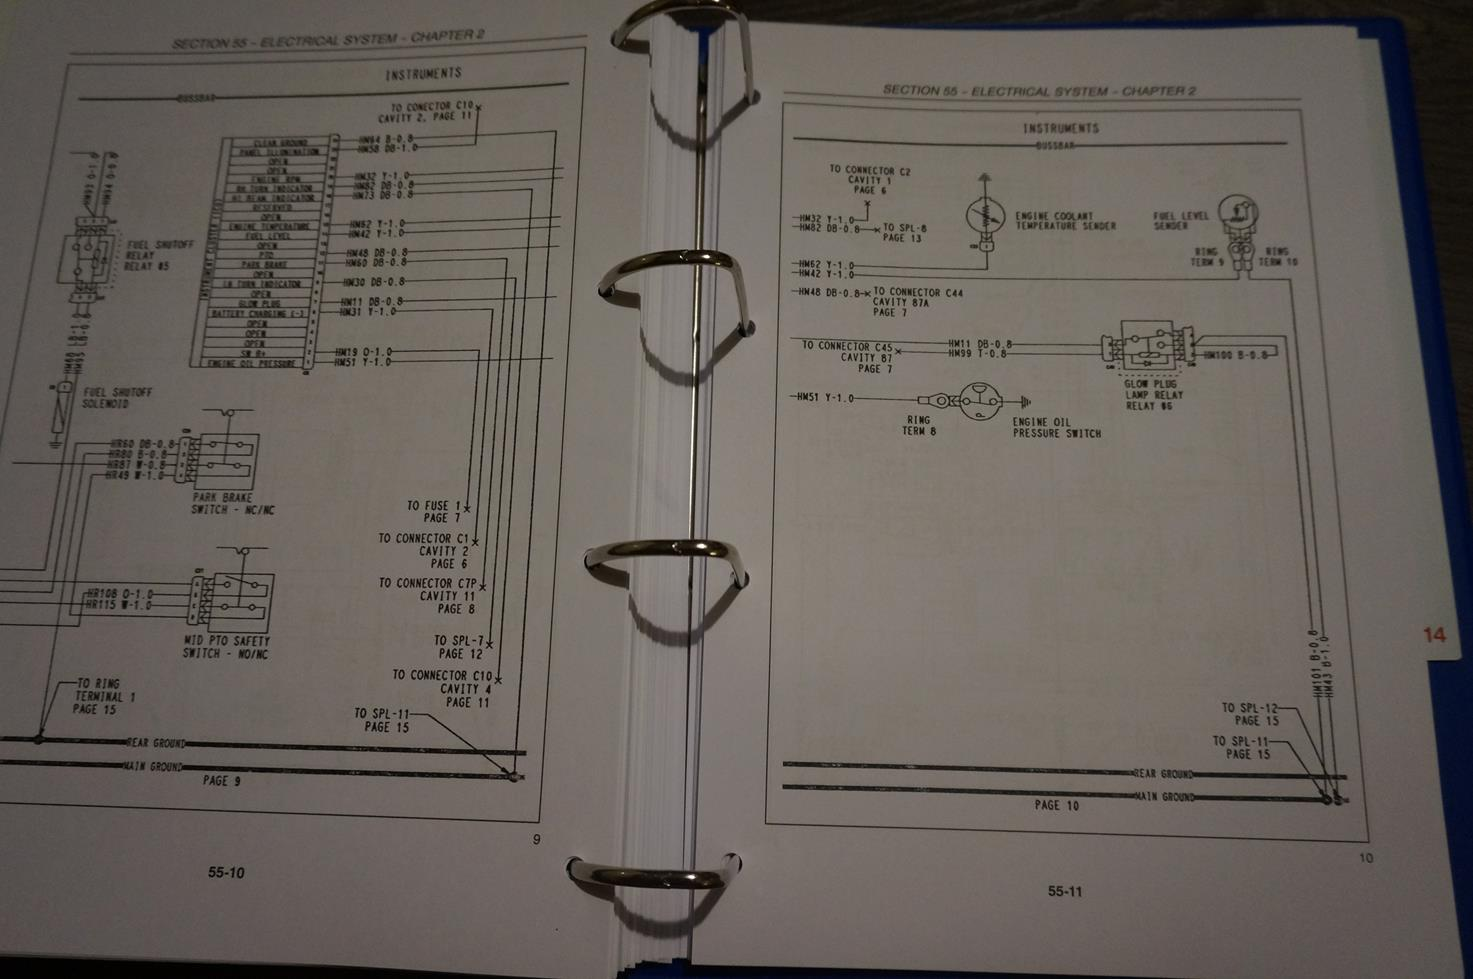 kohler engines schematics 7308 cv wiring library2728160e77973dcf28fd88ab8c50127678e137b9cf99c80e206ab2417492426a array new holland tractor tc29da tc33da service workshop repair manual rh agromanuals com